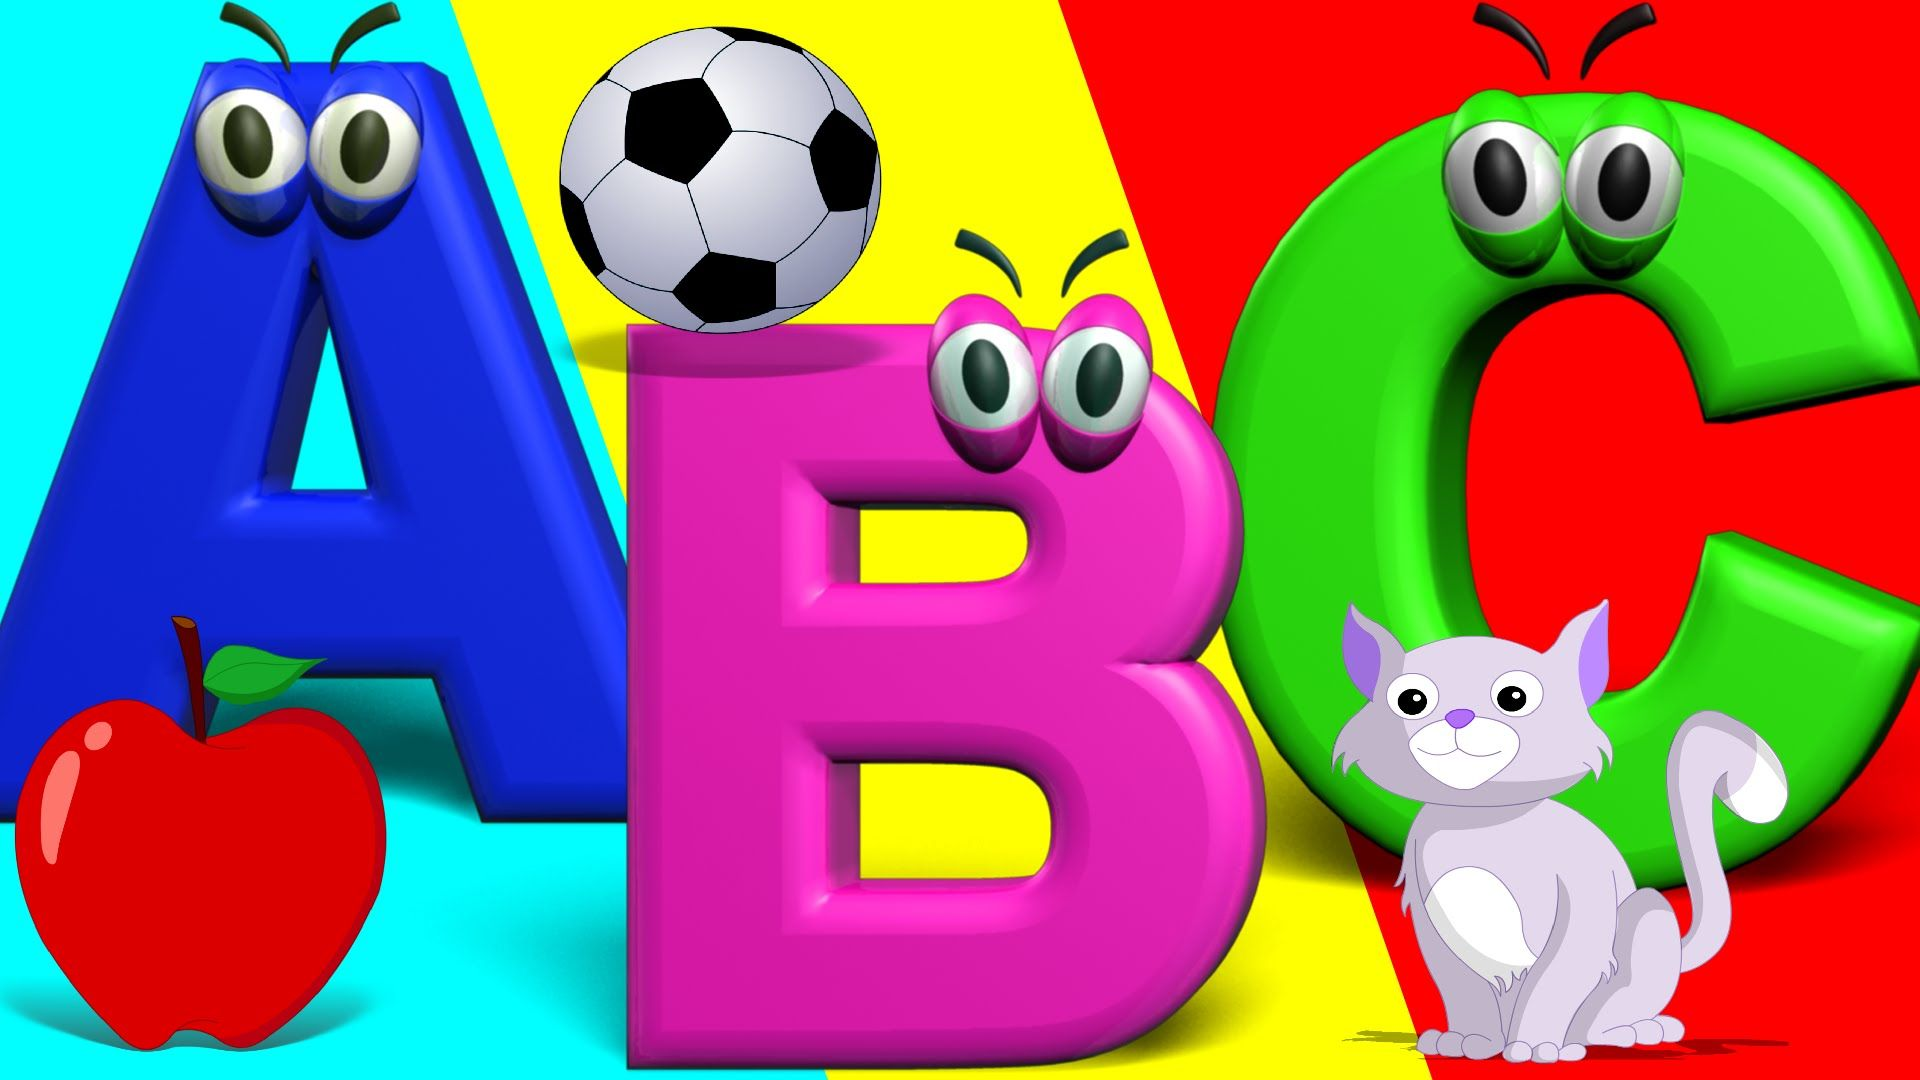 The Big Phonics Song | Phonics Letter Song A-Z | Nursery Rhymes For ...